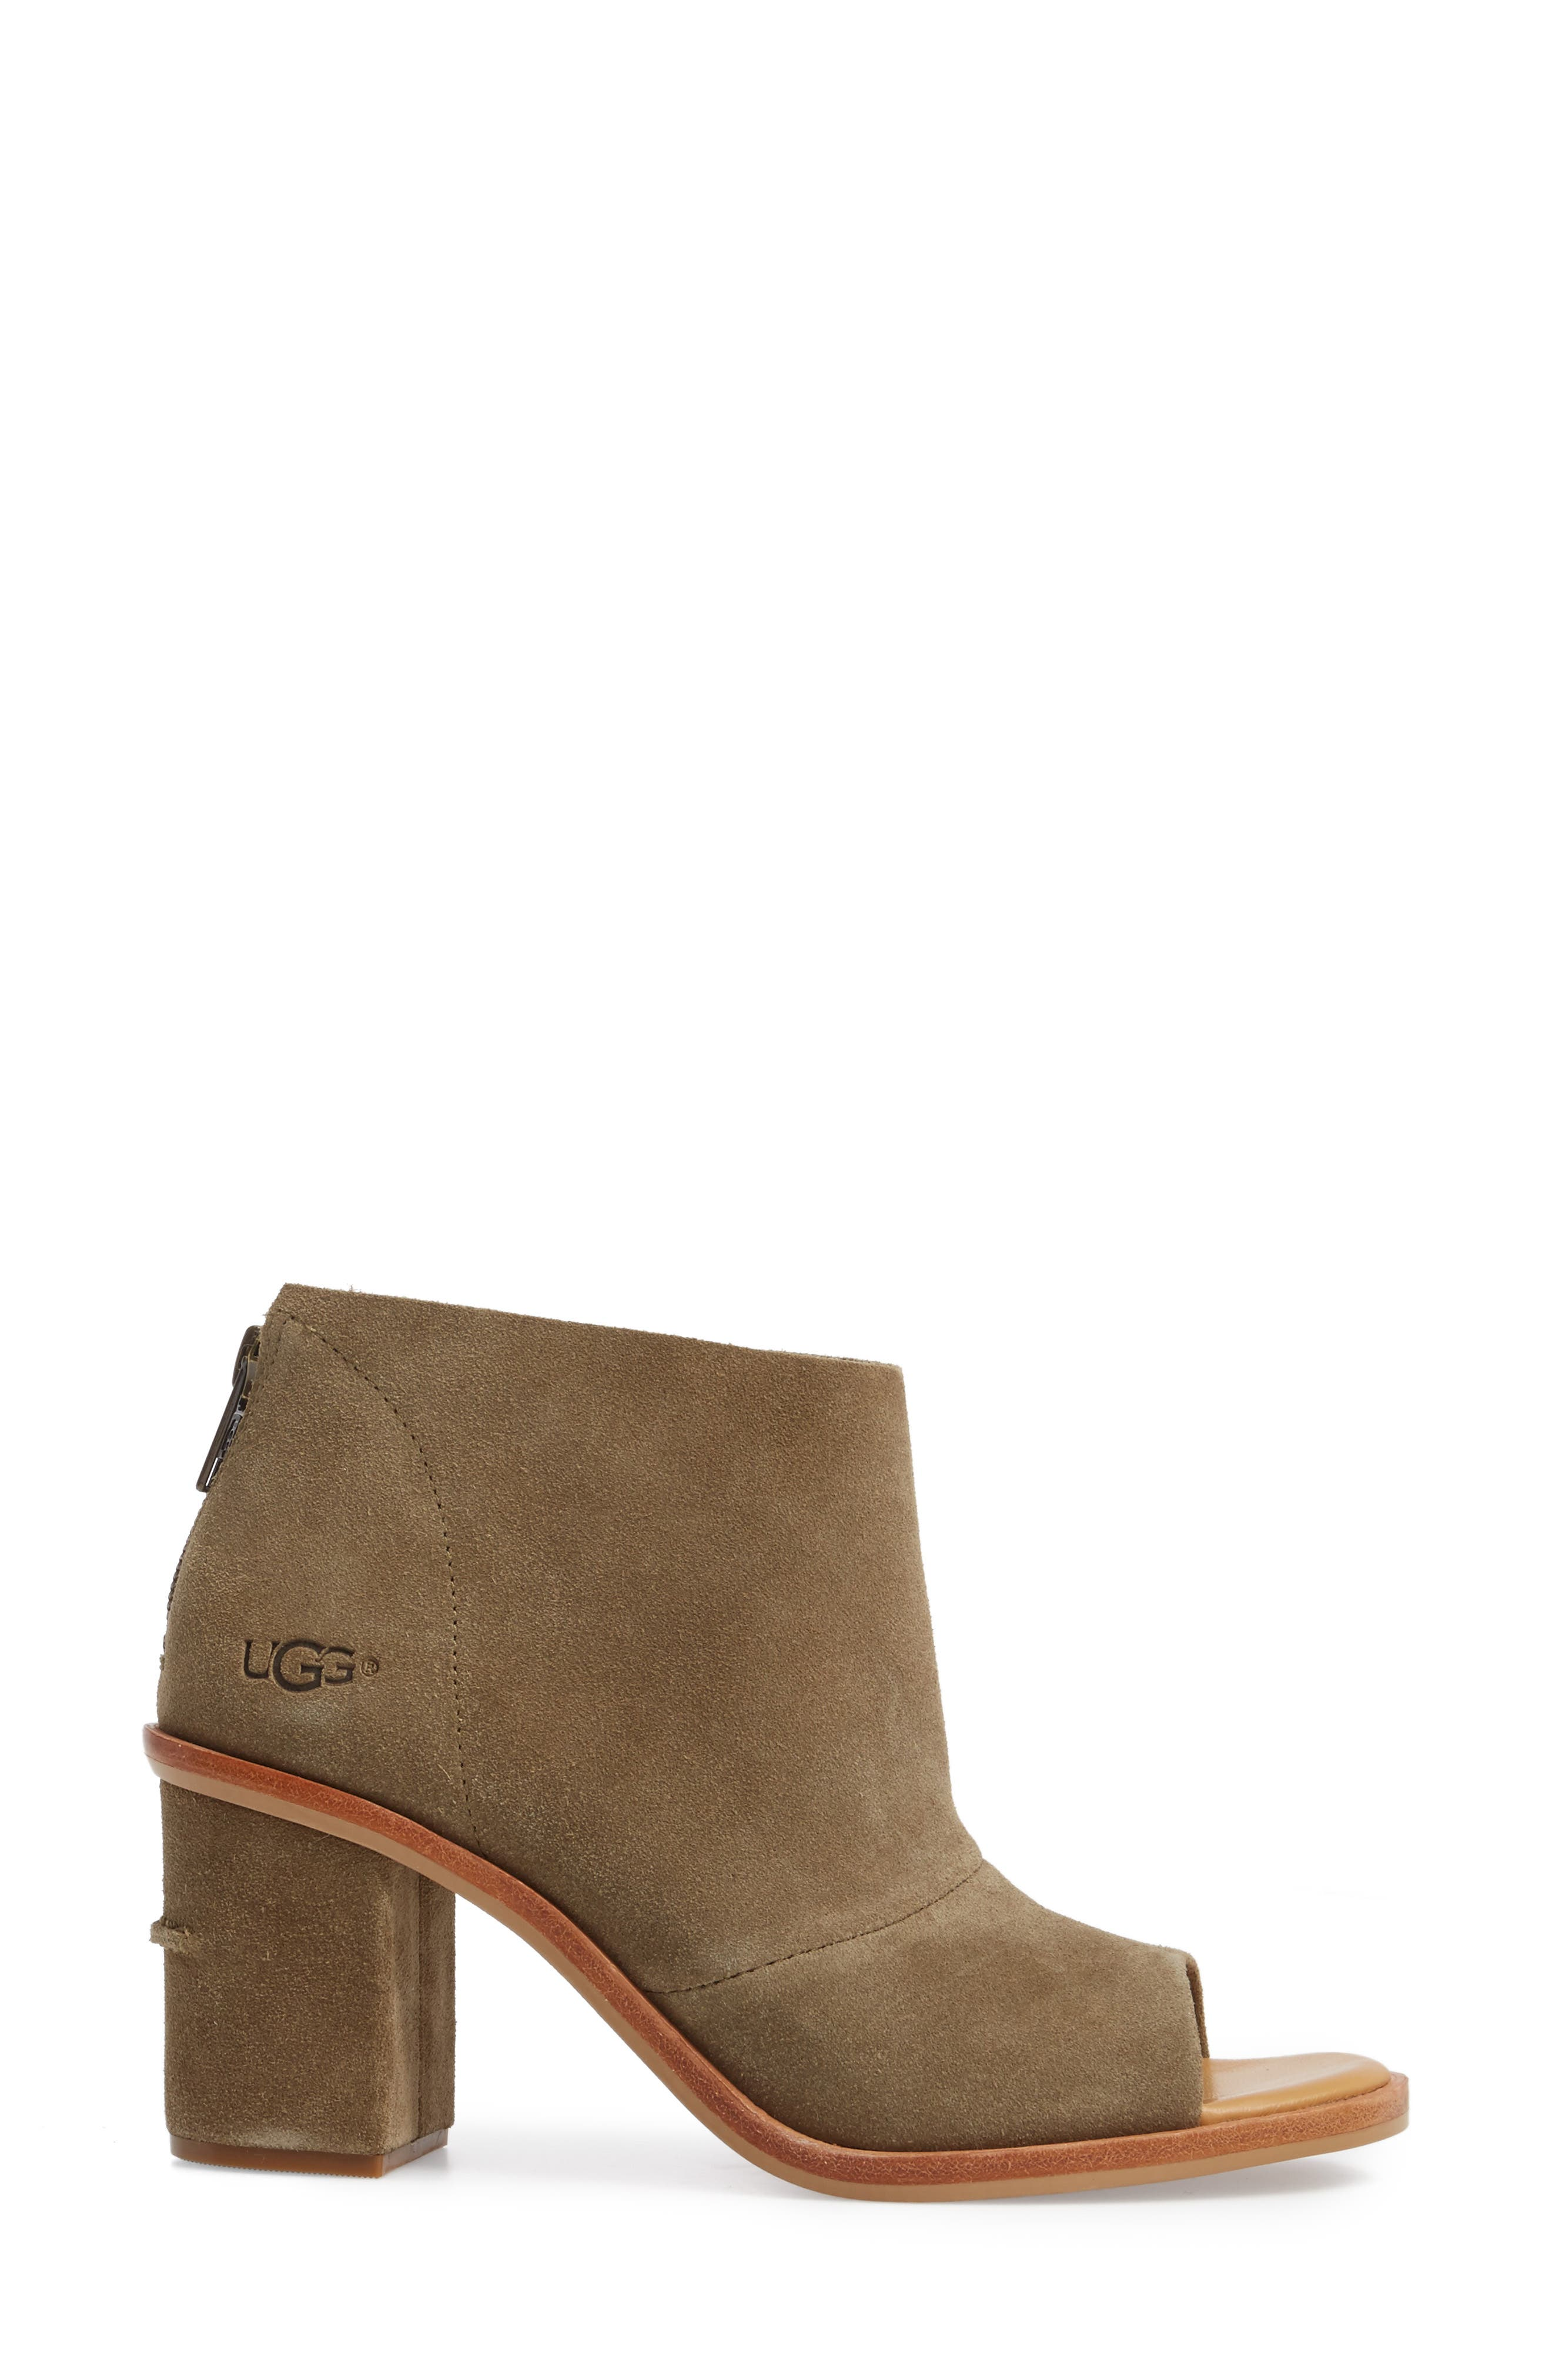 Ginger Peep Toe Bootie,                             Alternate thumbnail 3, color,                             Apple Green Suede